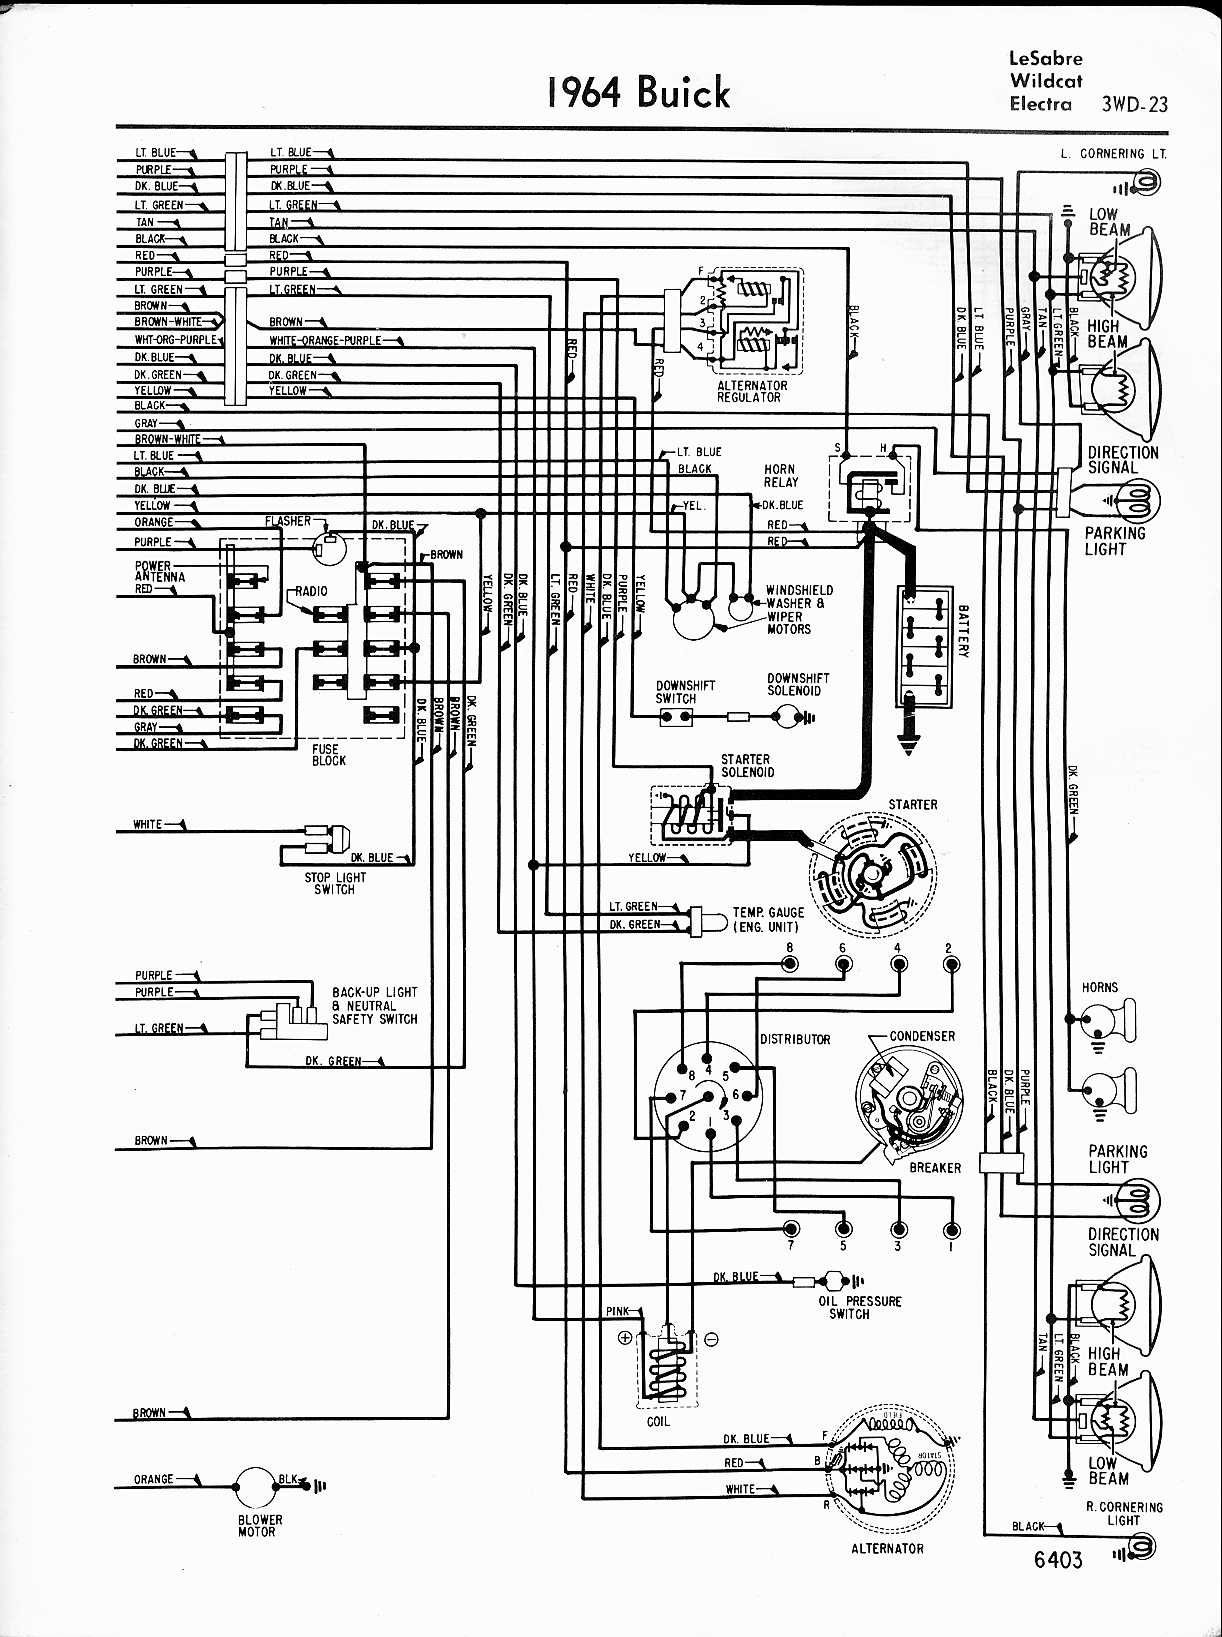 MWireBuic65_3WD 023 buick wiring diagrams 1957 1965 Buick LeSabre Engine Diagram at webbmarketing.co